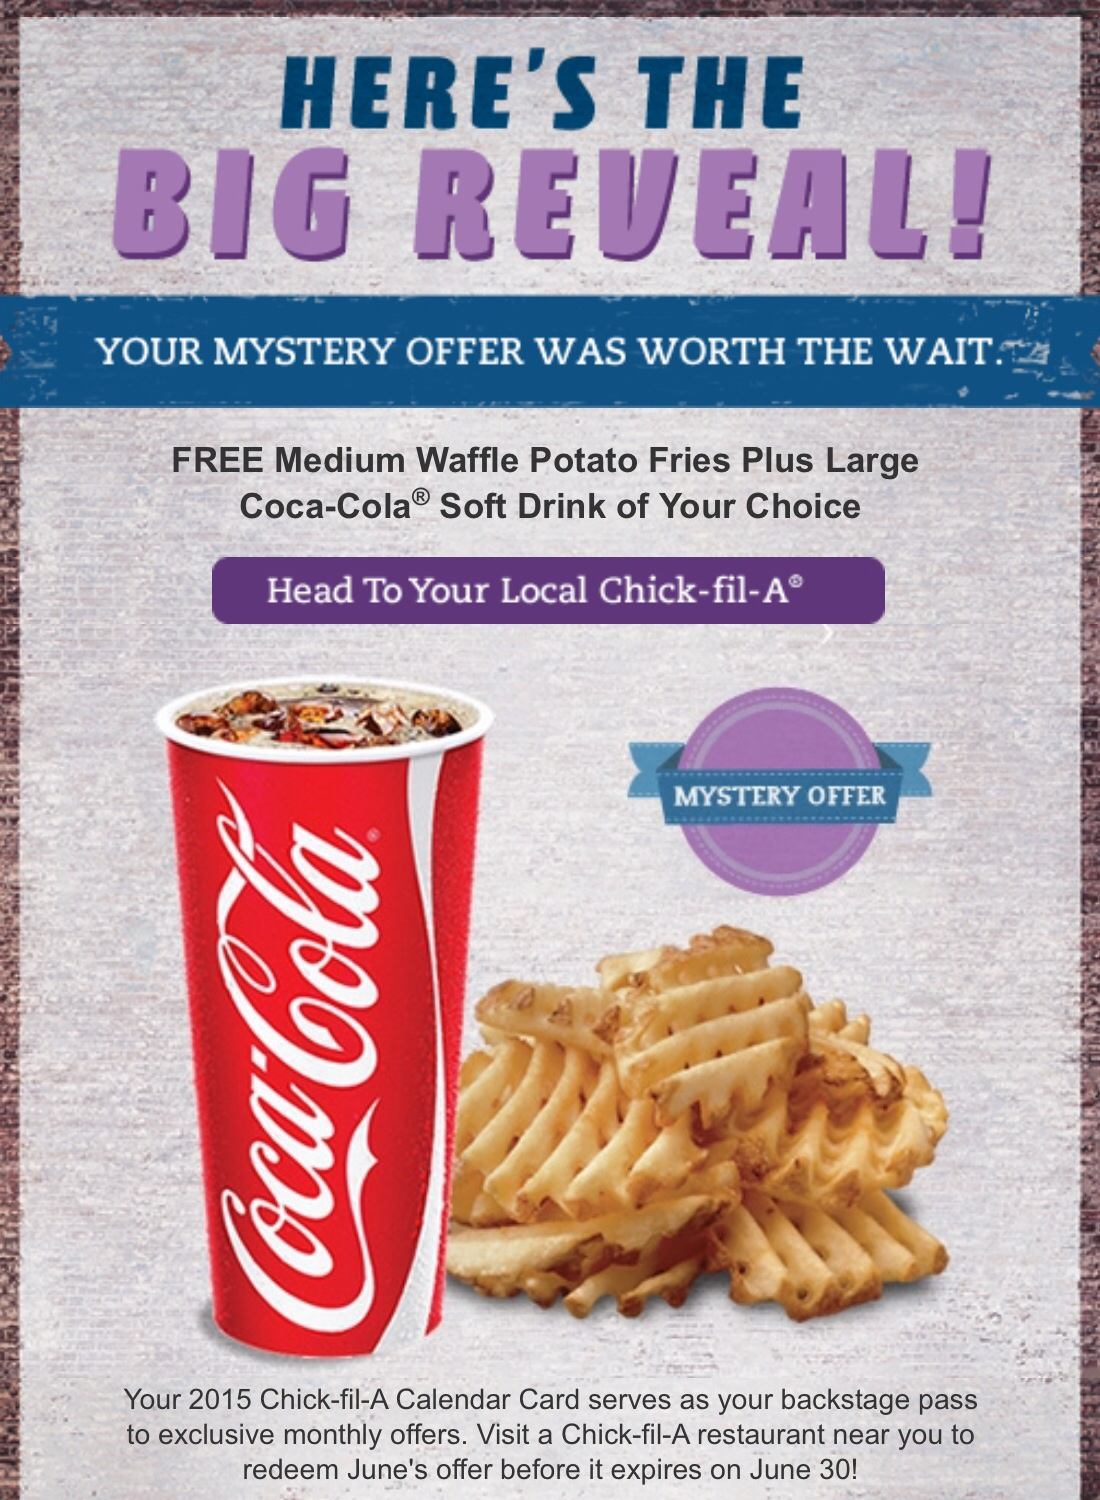 Gallant Mystery Calendar Offer Free Large Coke At Who Said K Fil A Waffle Fries Catering K Fil A Waffle Fries Price June Is Free Waffle Fries Free Largecoke Free Waffle Fries nice food Chick Fil A Waffle Fries